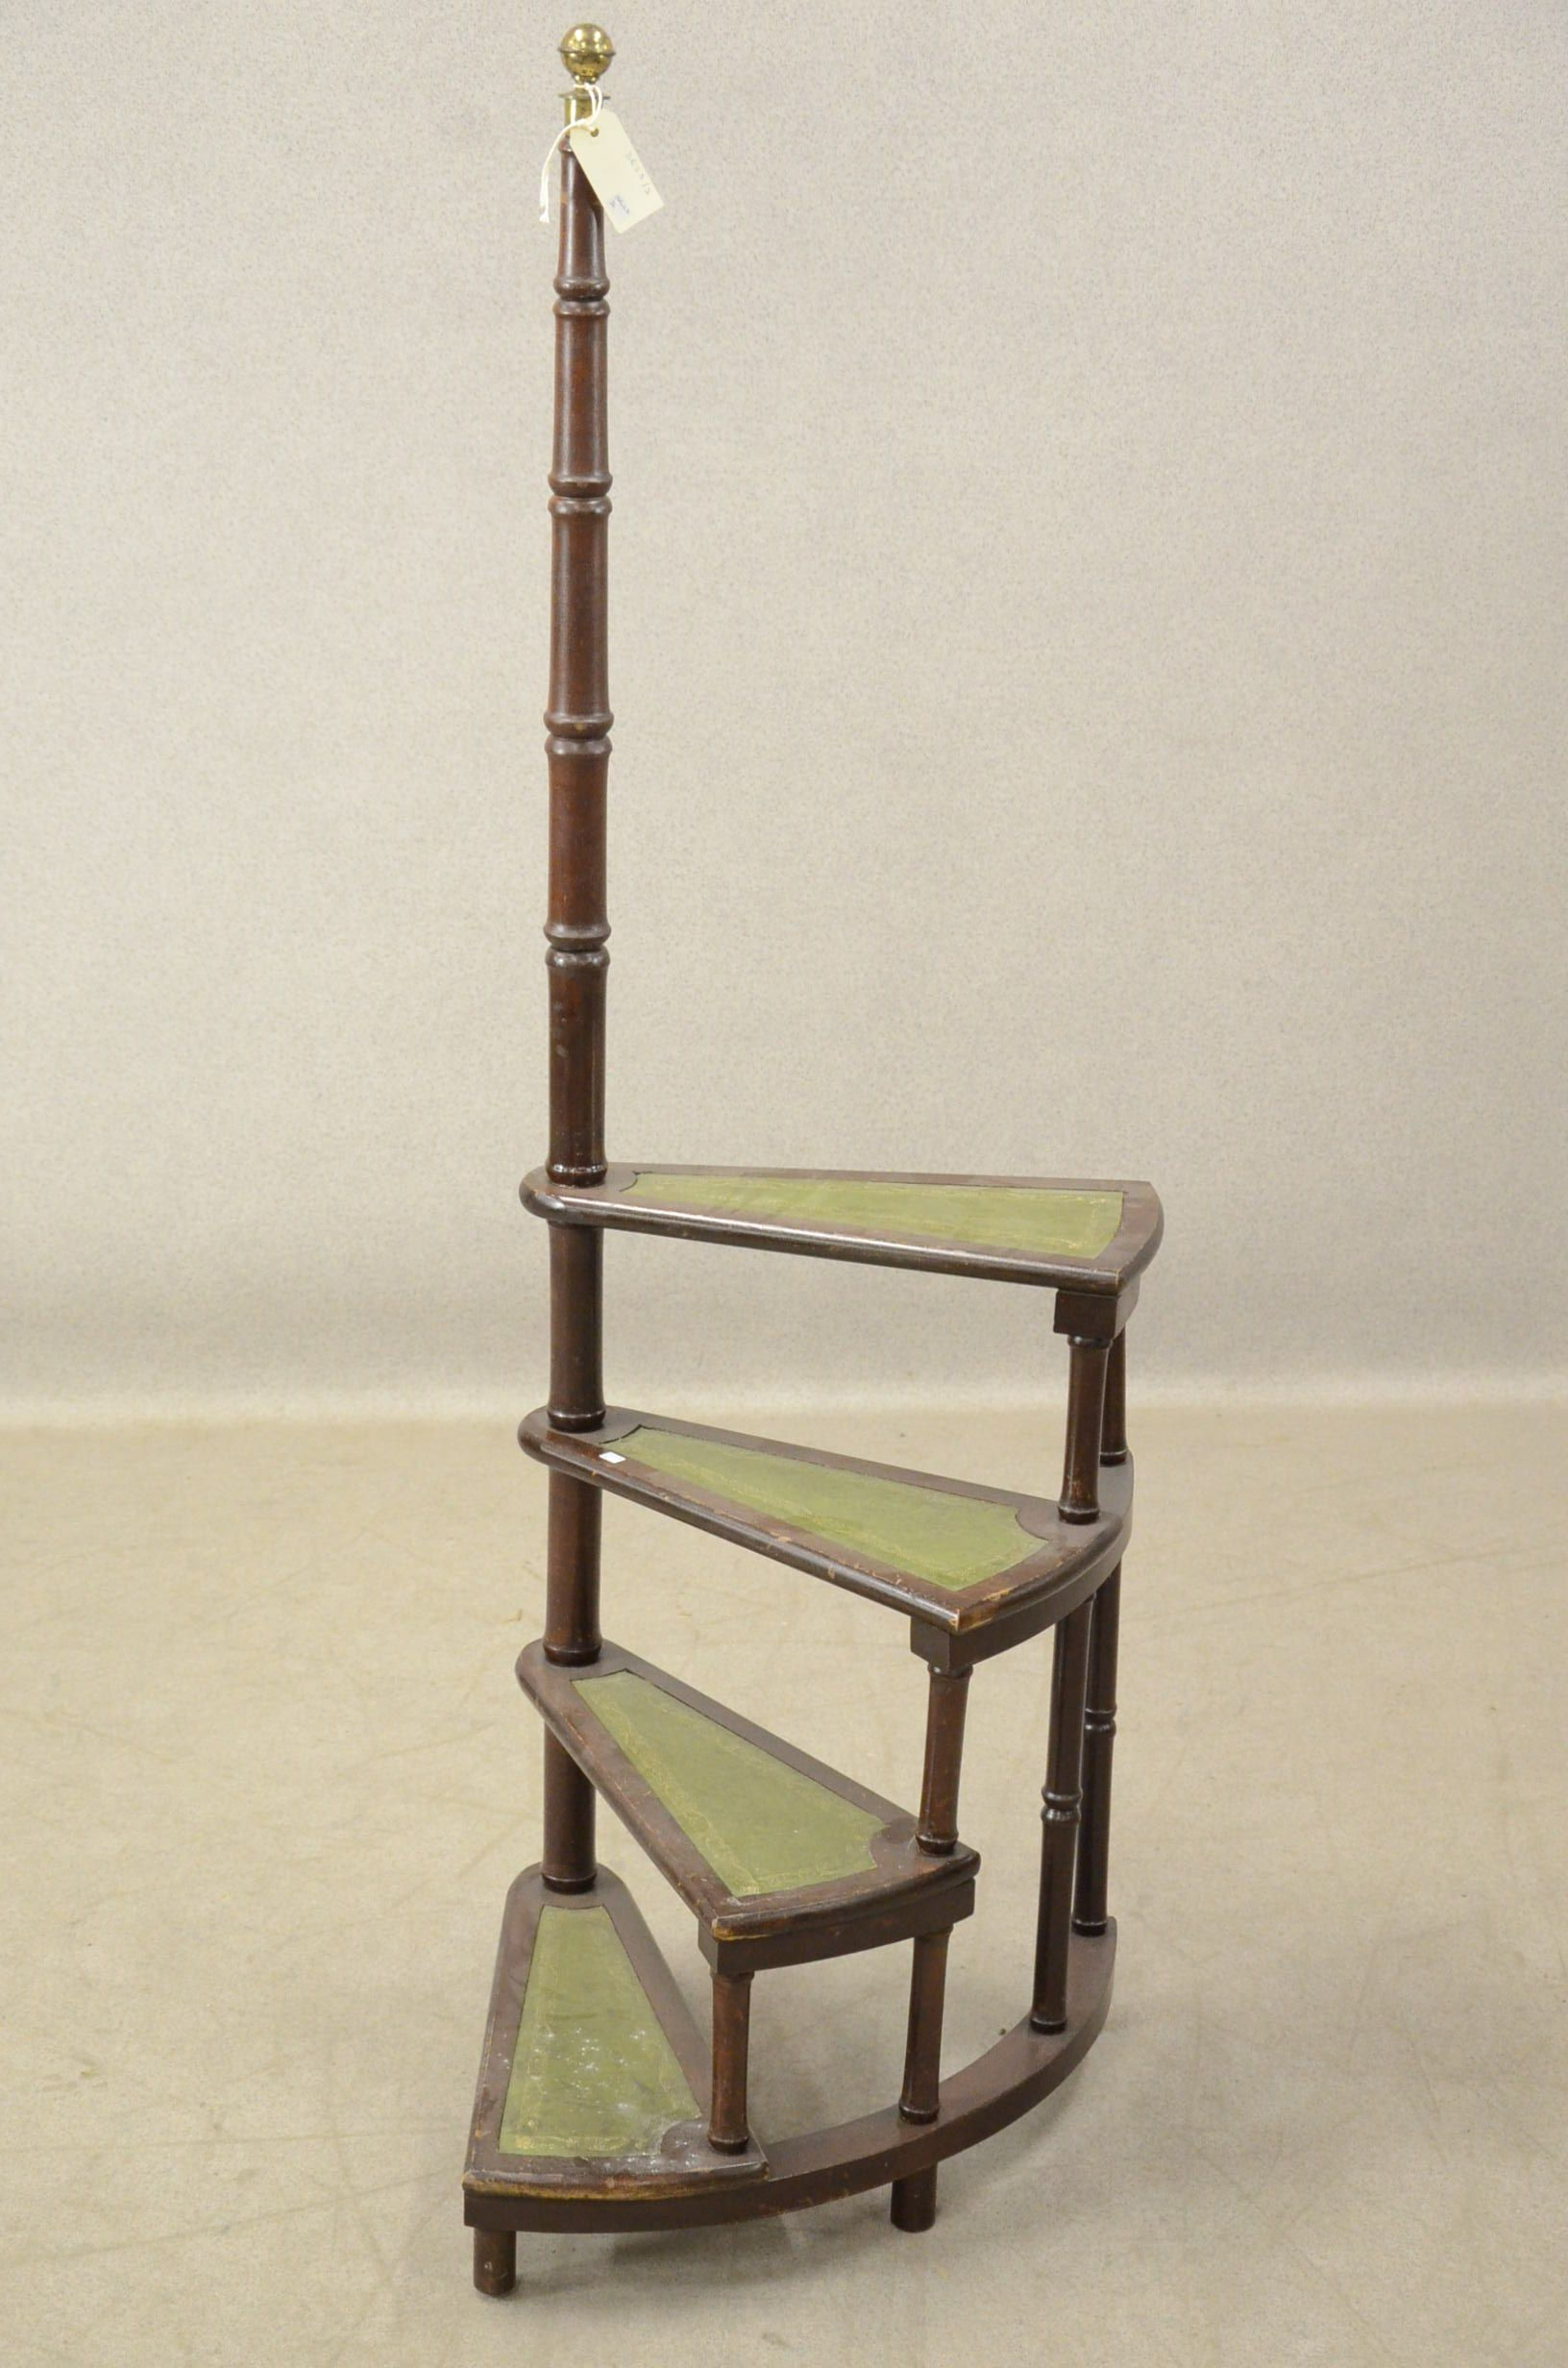 Tabouret Escabeau Bois Escabeau Cool Escabeau En Bois With Escabeau Elegant Marchepieds